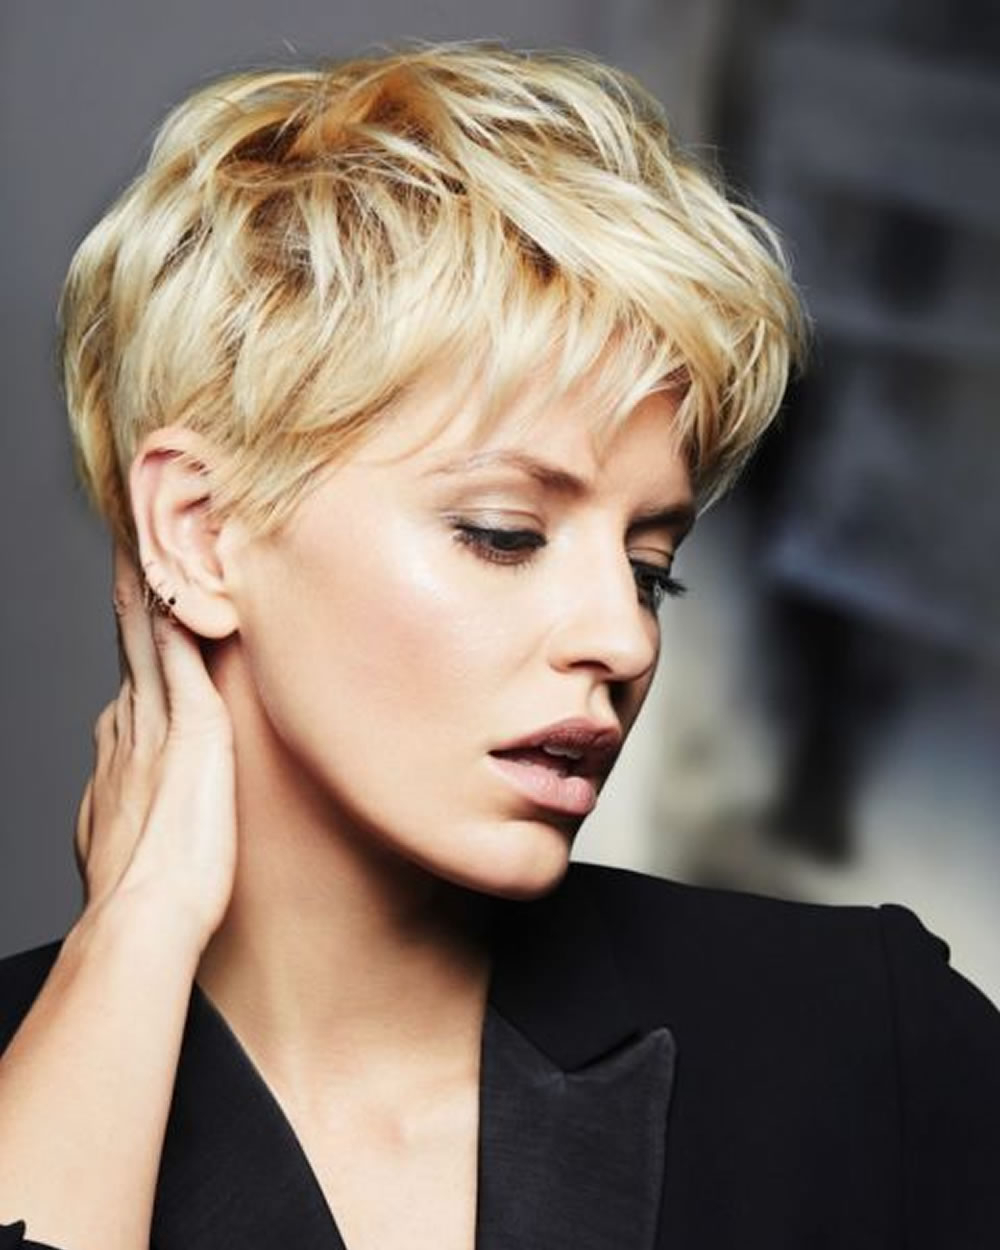 Hey Ladies! Best 13 Short Haircuts For Round Faces Inspirations You With Regard To Short Hairstyles For Women With Round Faces (View 11 of 25)